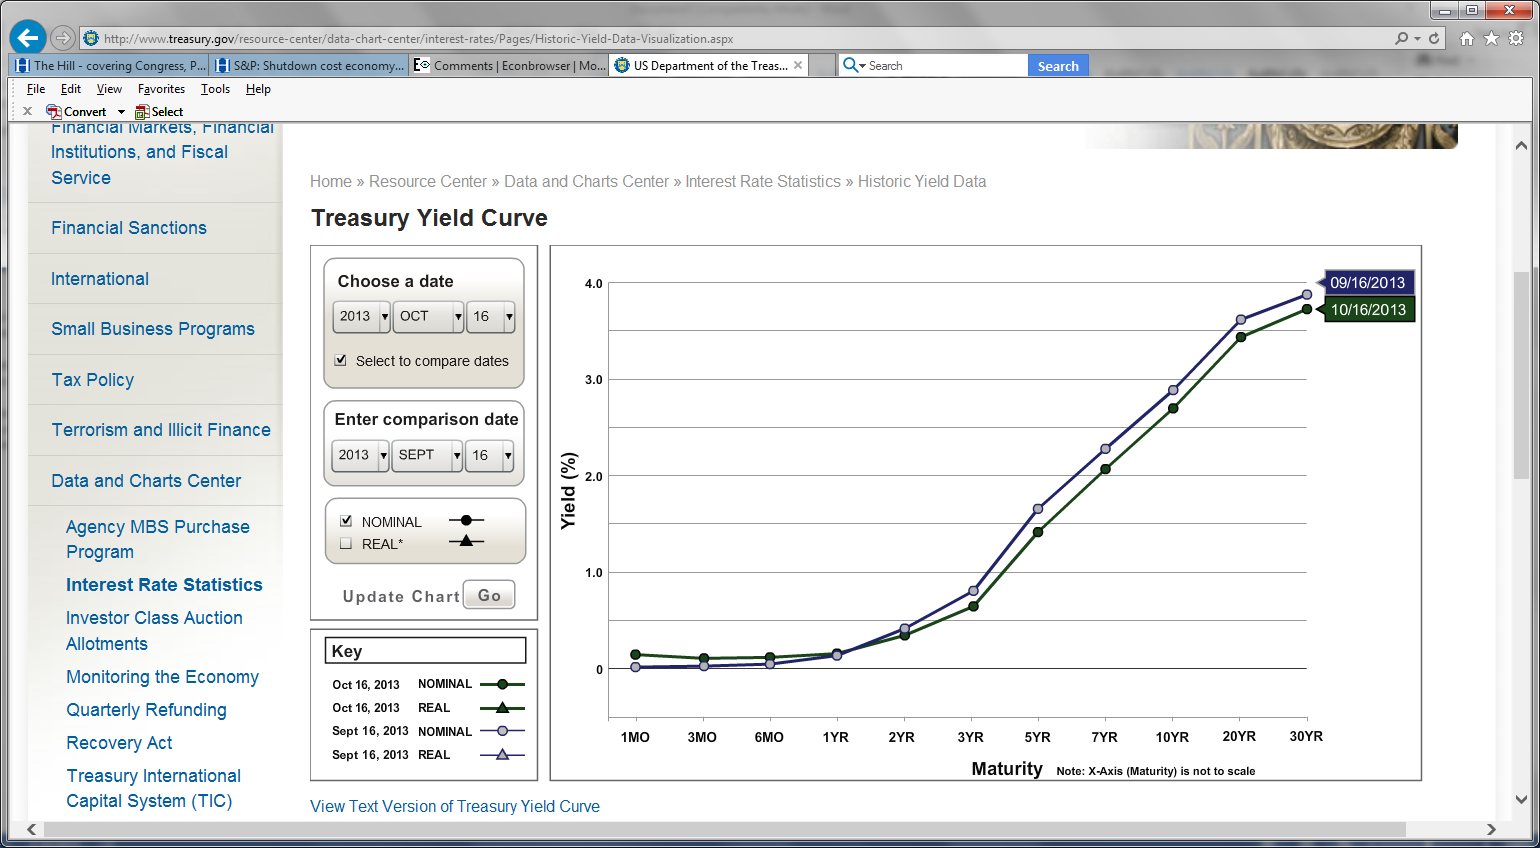 yieldcurve_16oct13.png